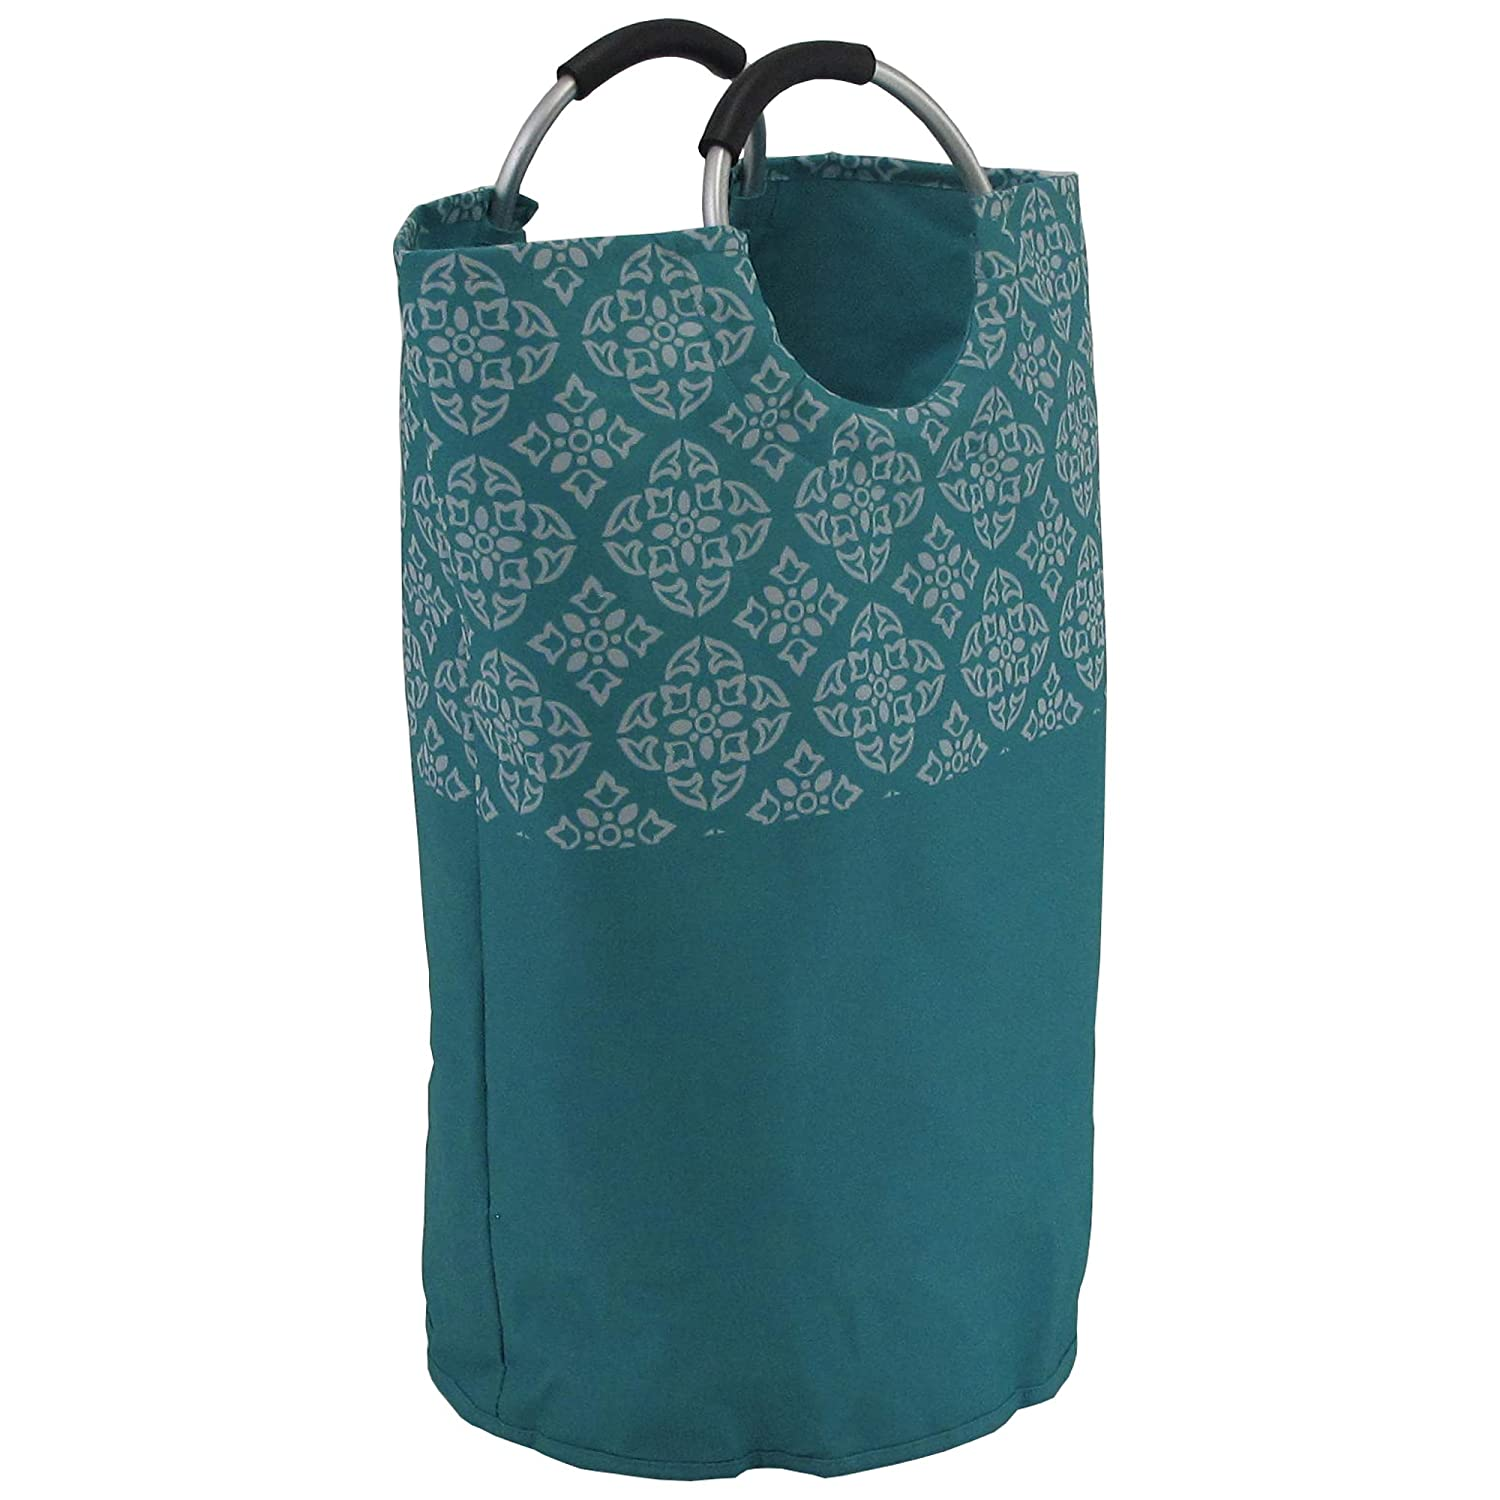 Redmon Medallion Comfort Grip Hamper, Teal, Full